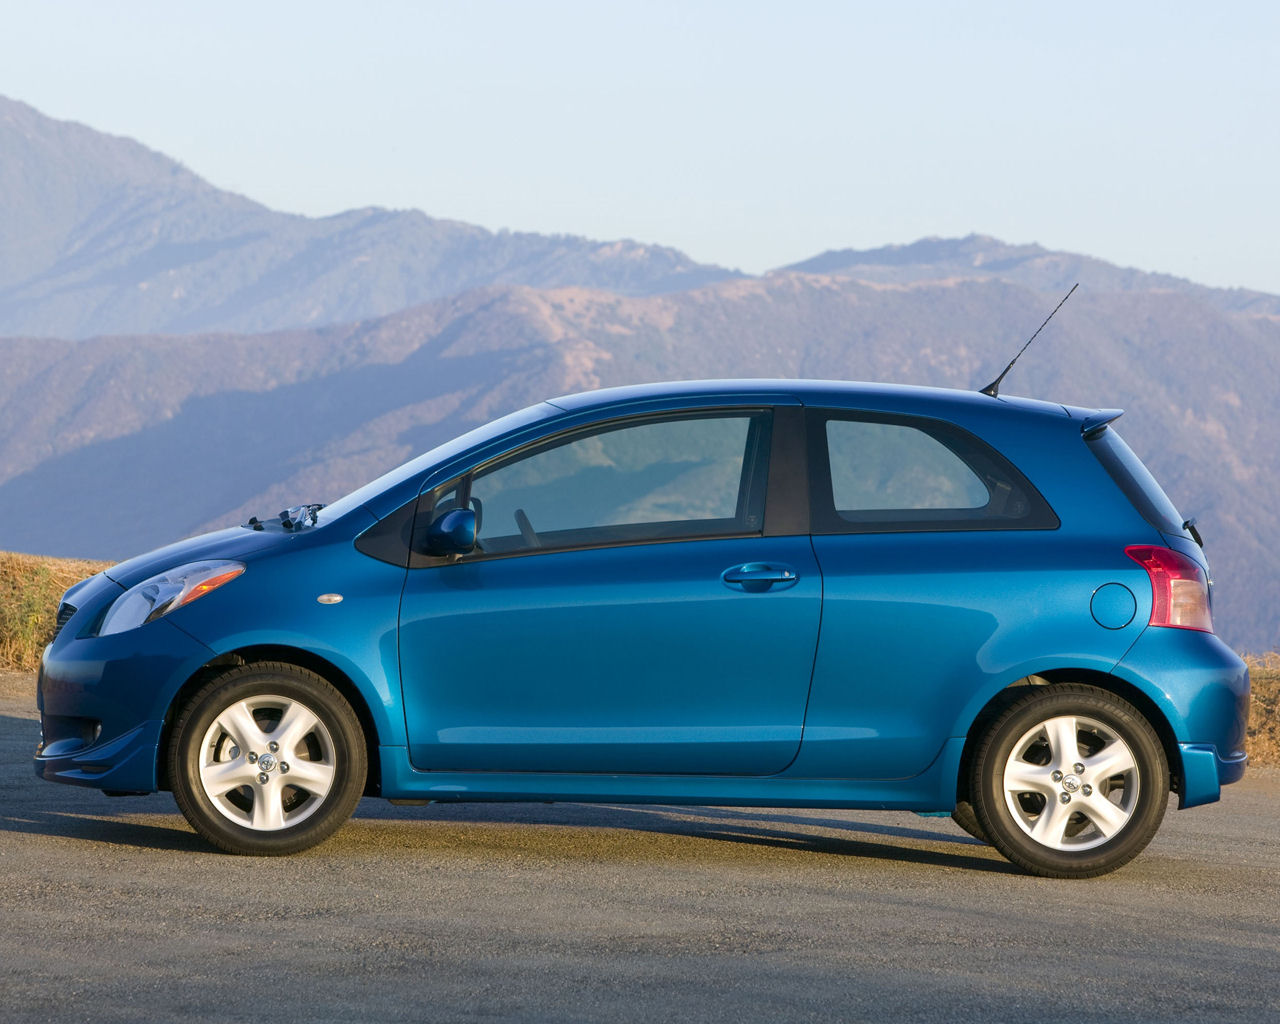 Toyota Yaris S, Sedan, Hatchback, Liftback Free 1280x1024 Wallpaper